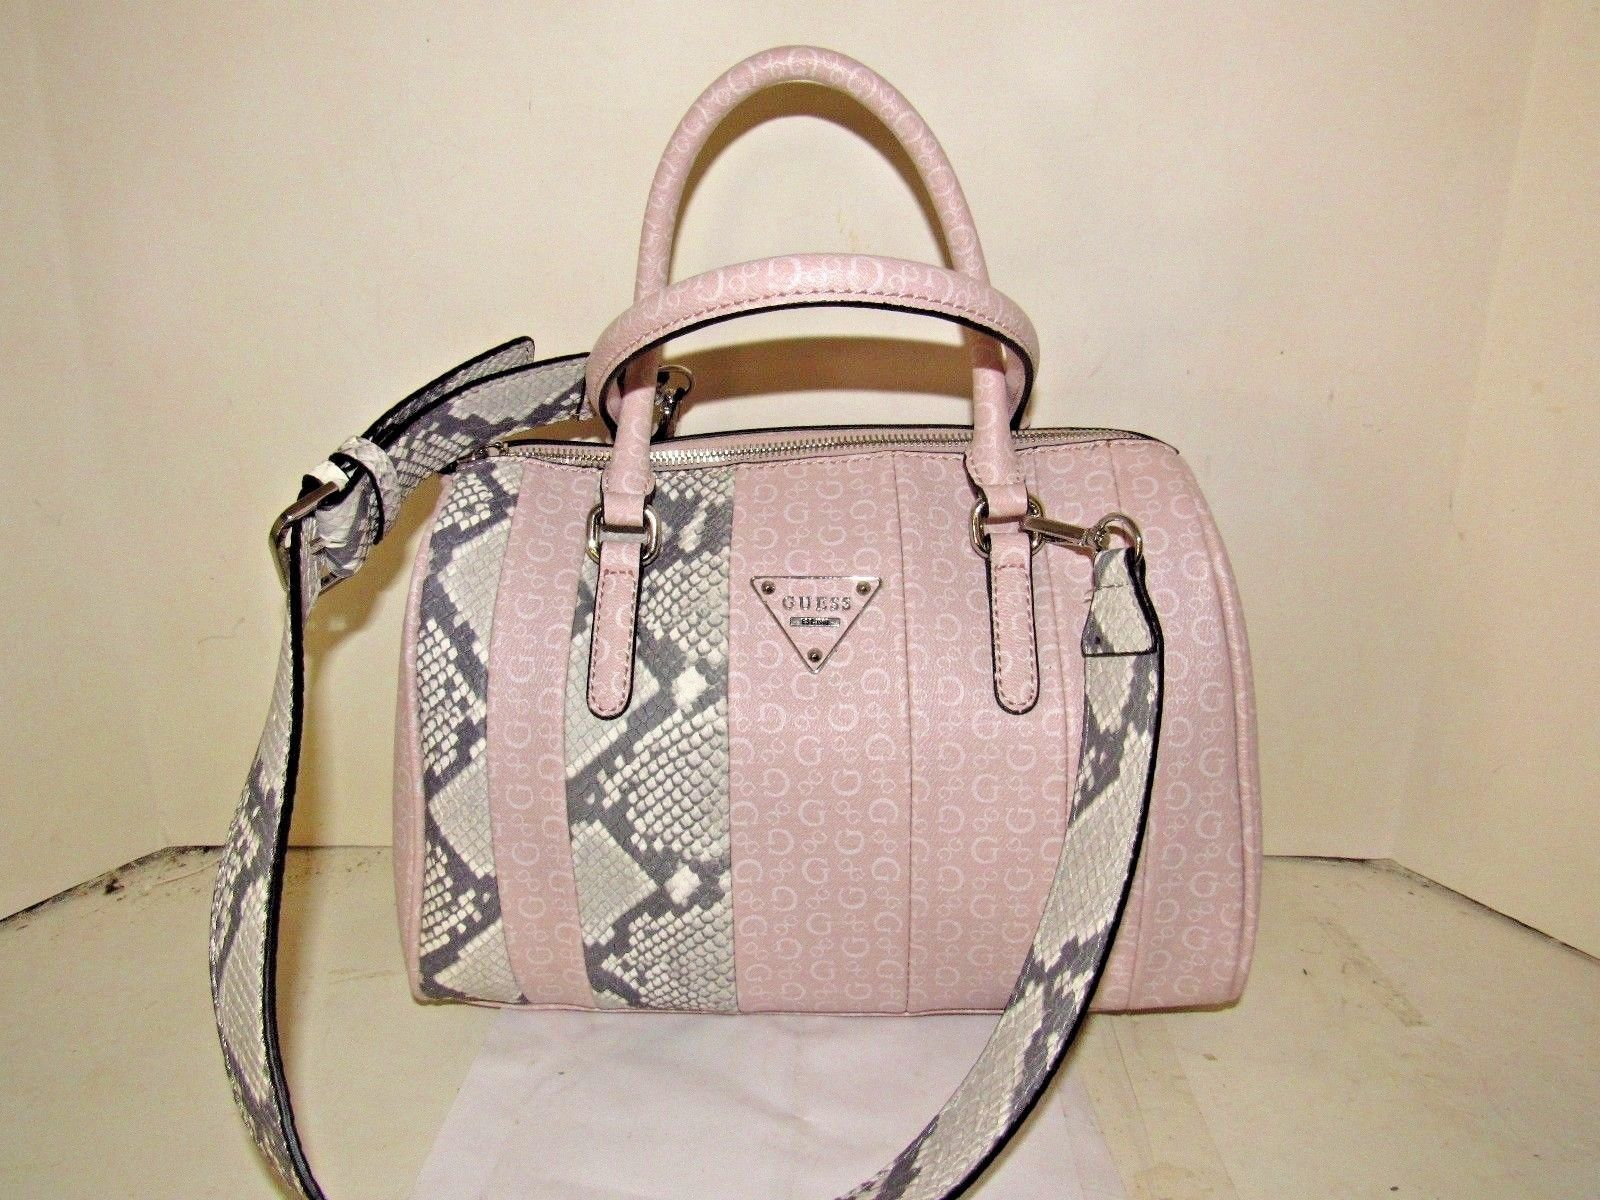 Bayview Designer Guess Purse Handbag